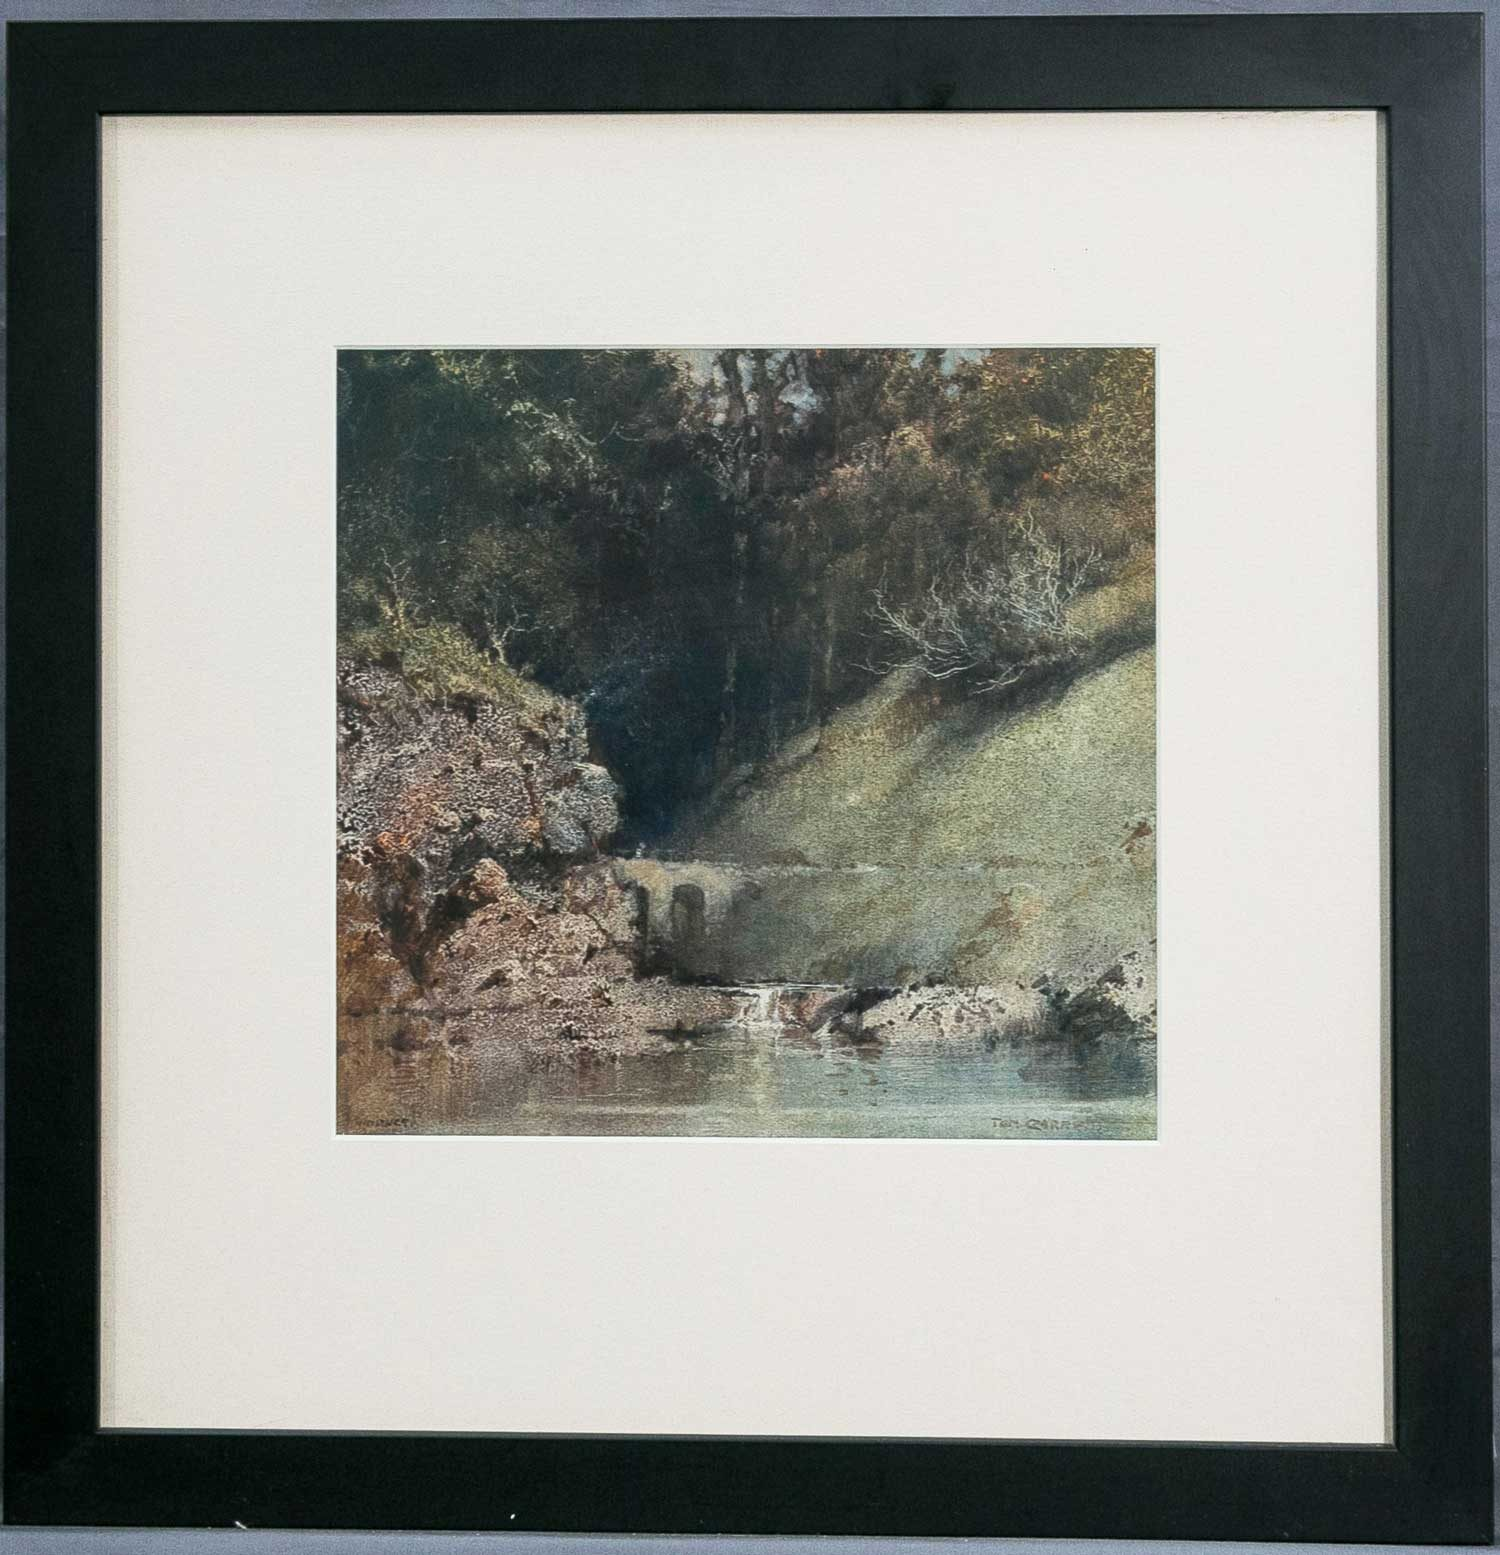 Tom Garrett Viaduct artwork framed